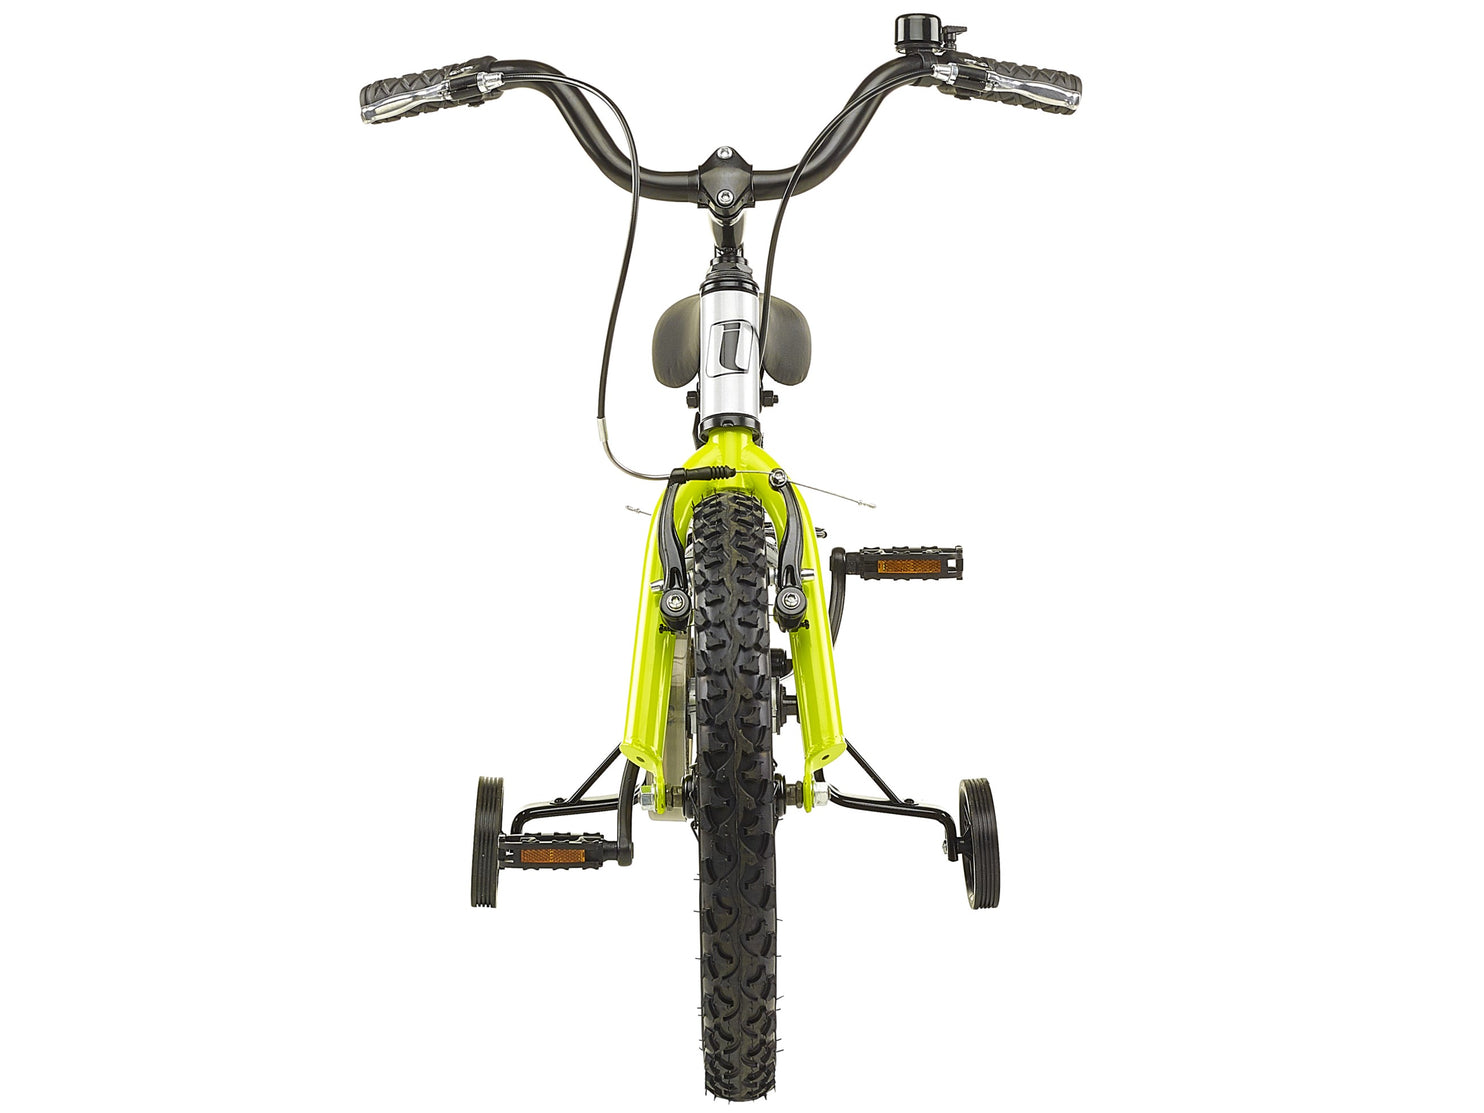 "Insync Asteroid 16"" Wheel Unisex Mountain Bike"